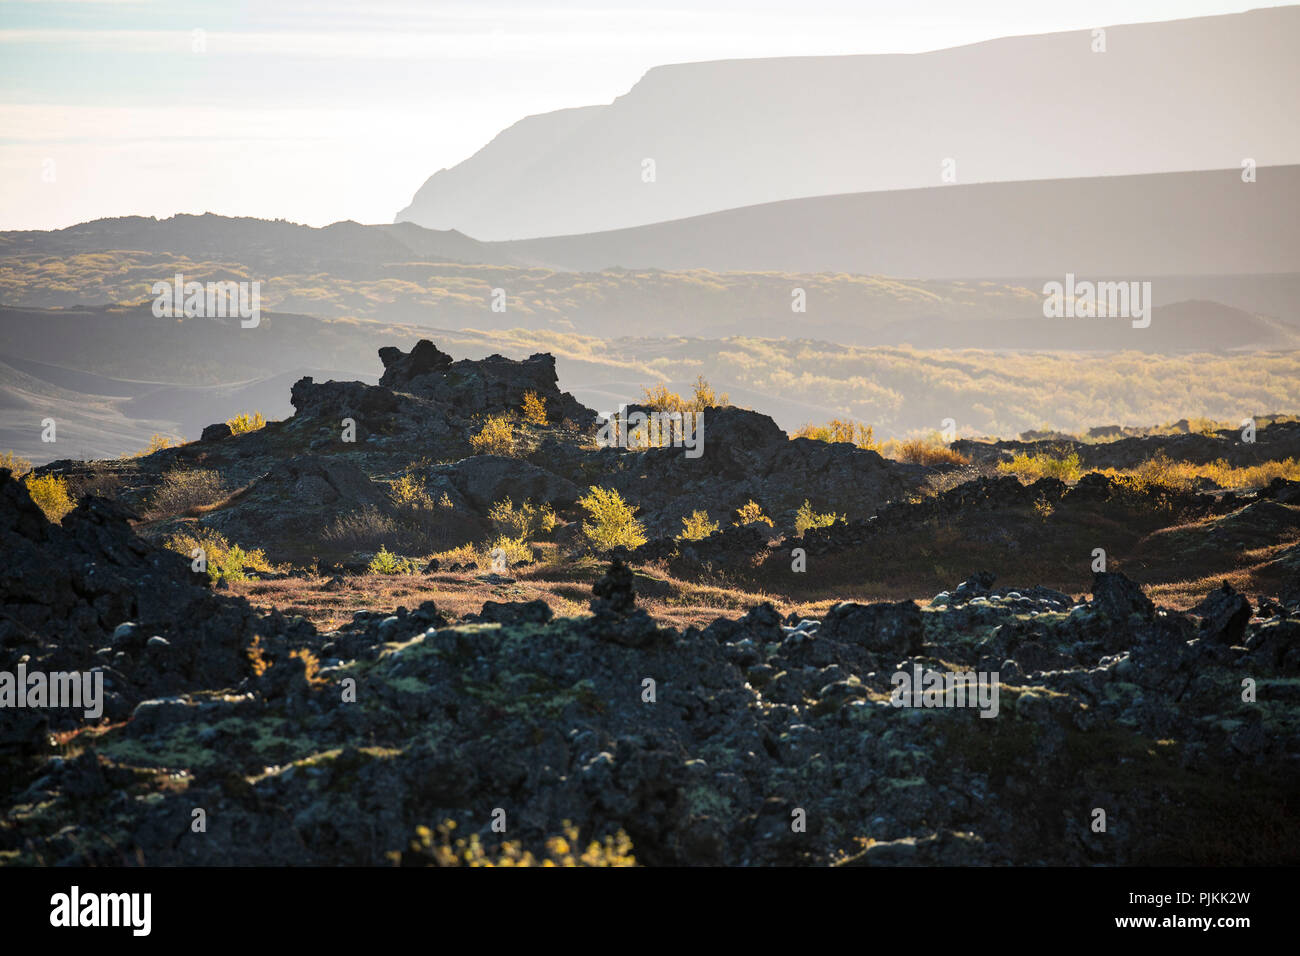 Iceland, Myvatn, Dimmuborgir lava field, pseudo crater, autumn leaves, backlight, evening light - Stock Image